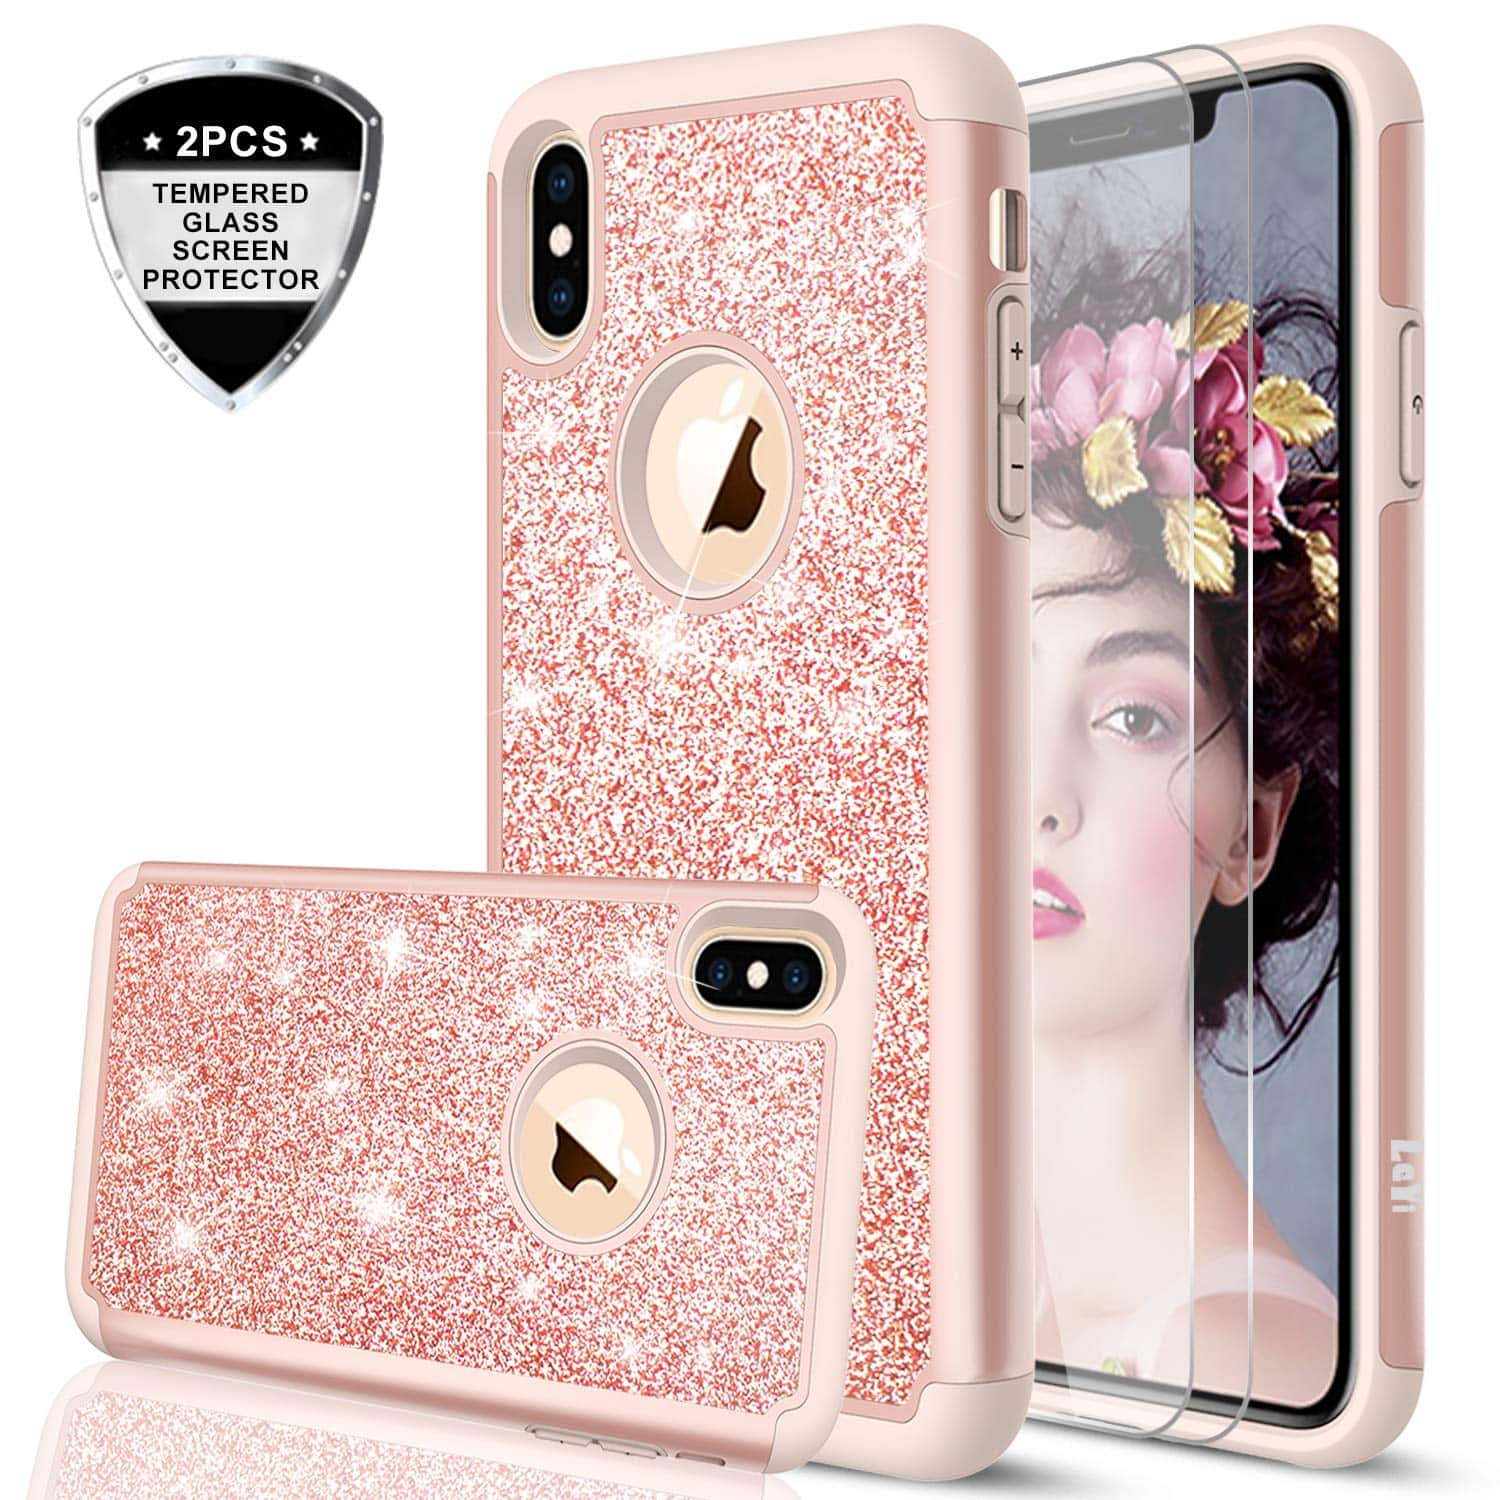 Glitter Case with Screen Protector for iPhone xr   5S samsung Galaxy Note 8    s9  s8  Google pixel 3 -  2.99+Free Shipping 40b16fd59c